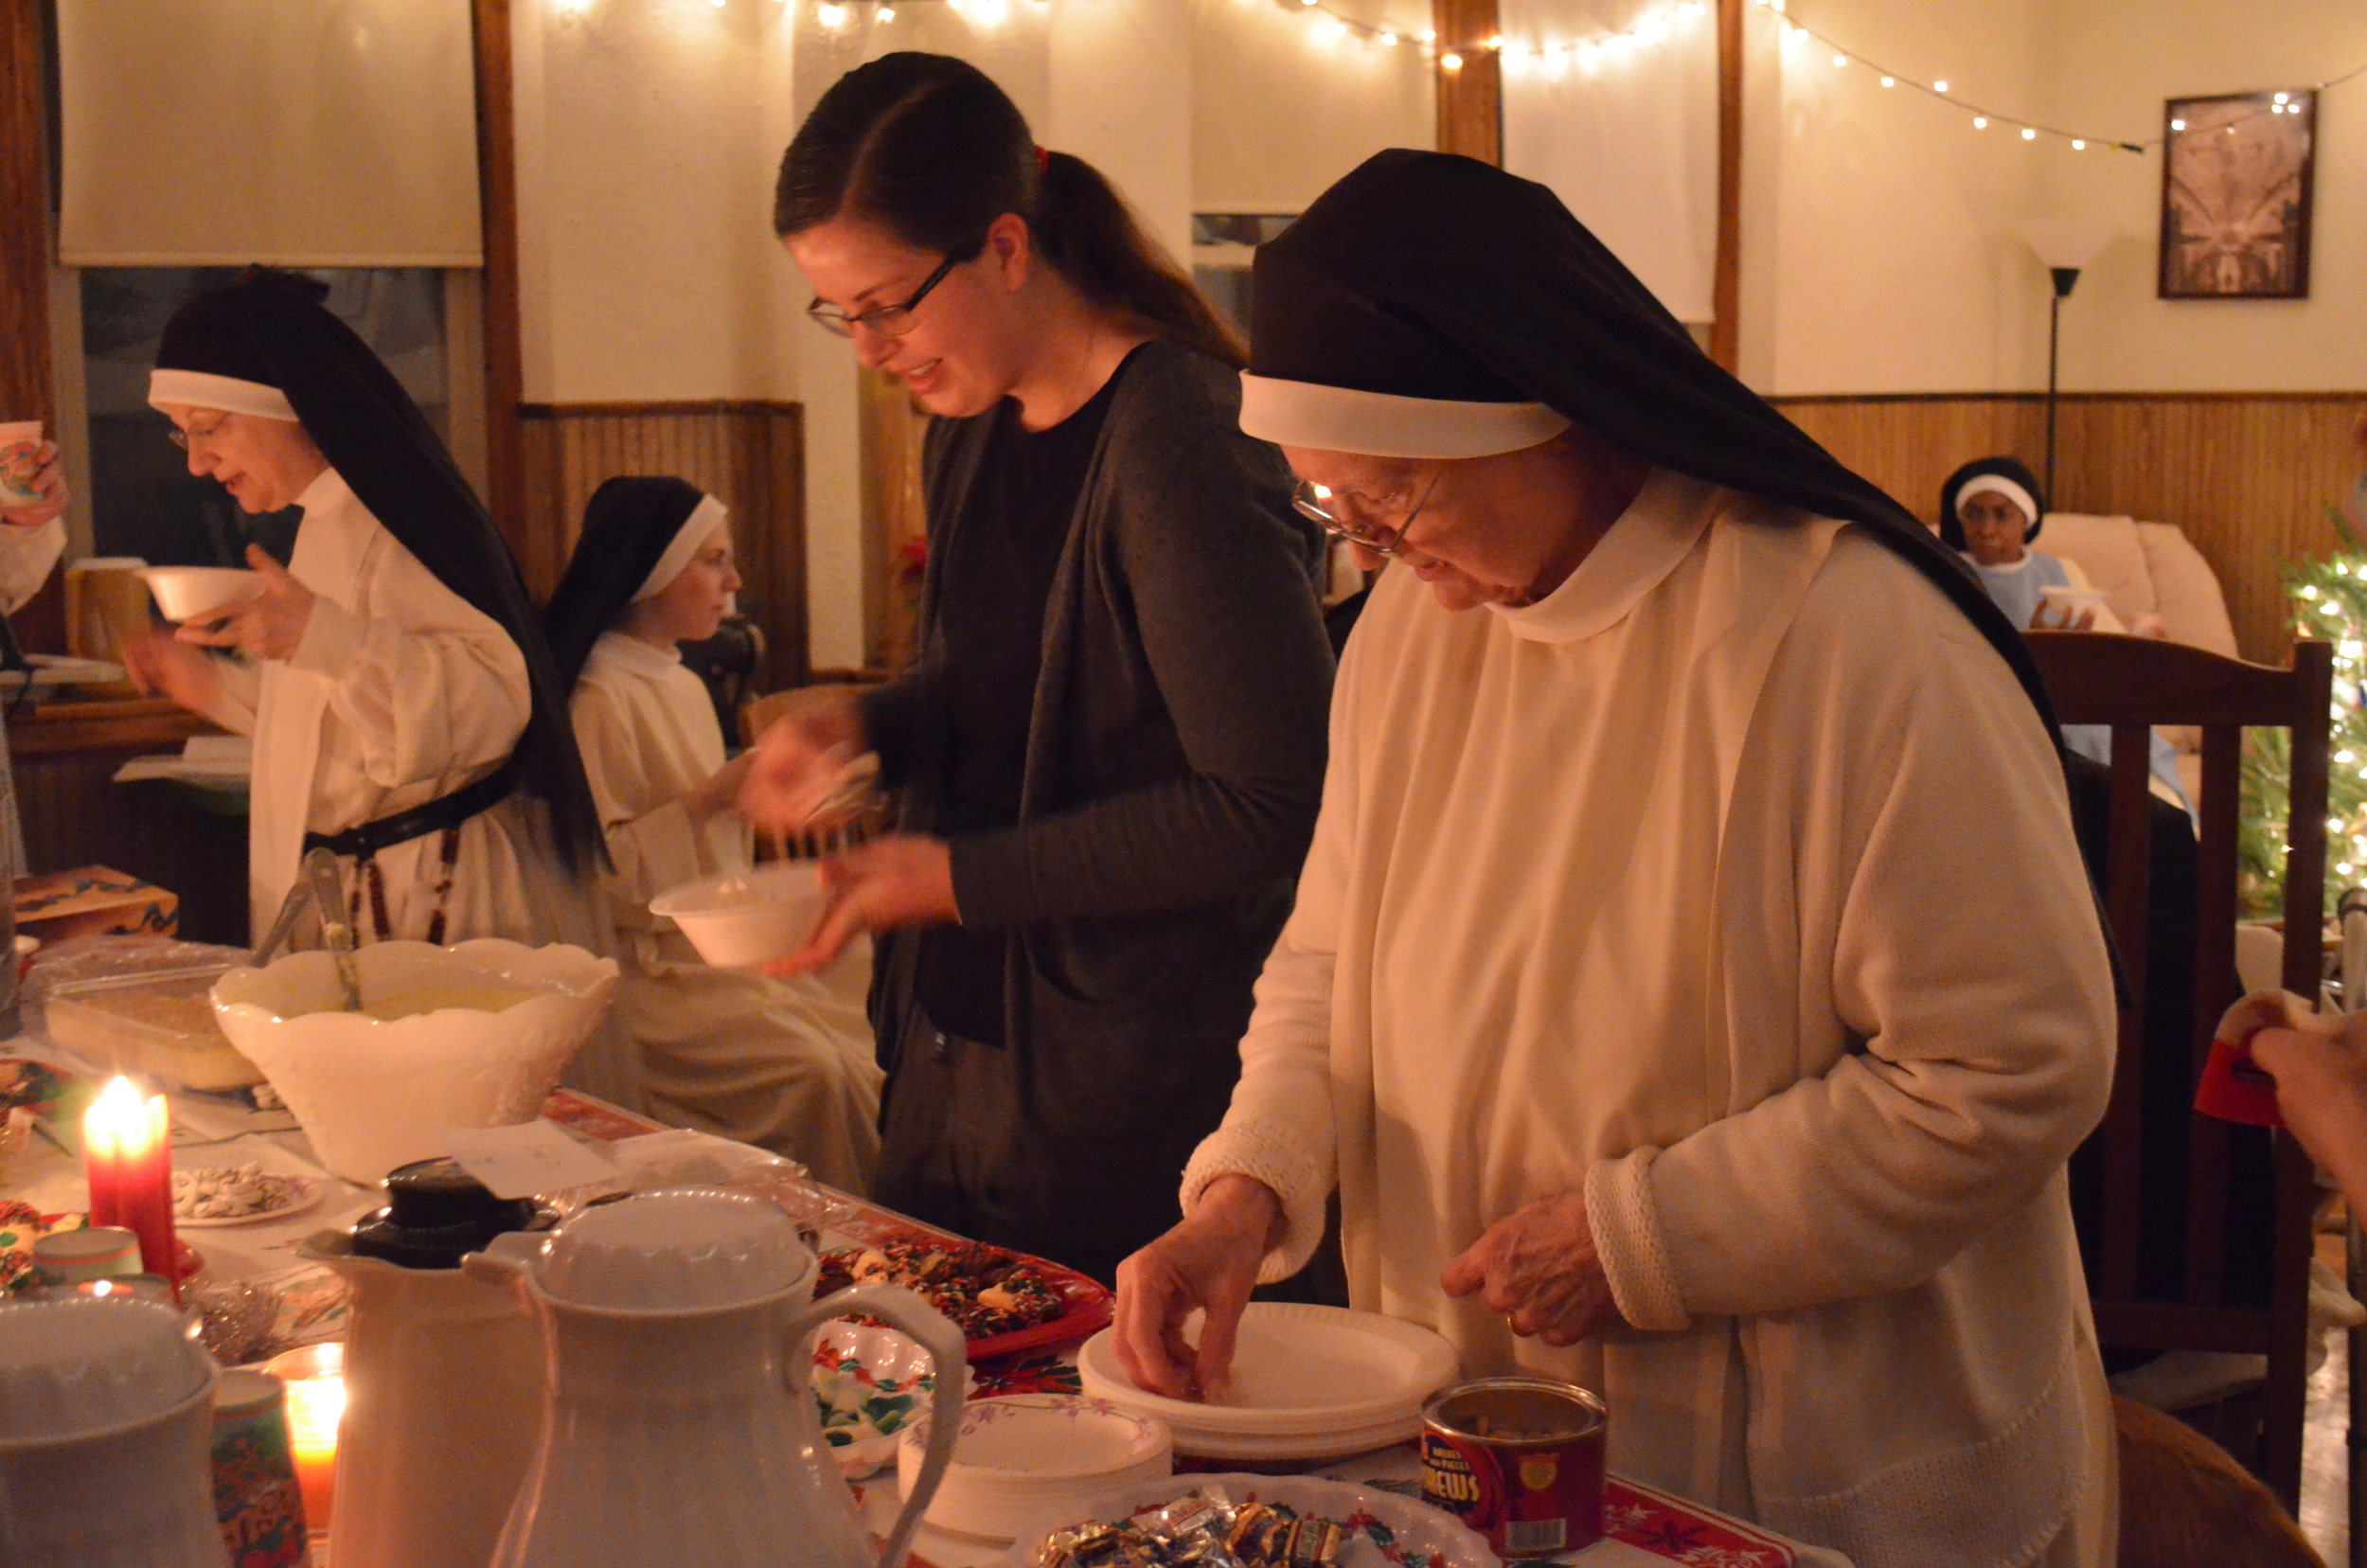 Emily and Sr. Maureen survey the spread of cookies, pudding, and hot cocoa.